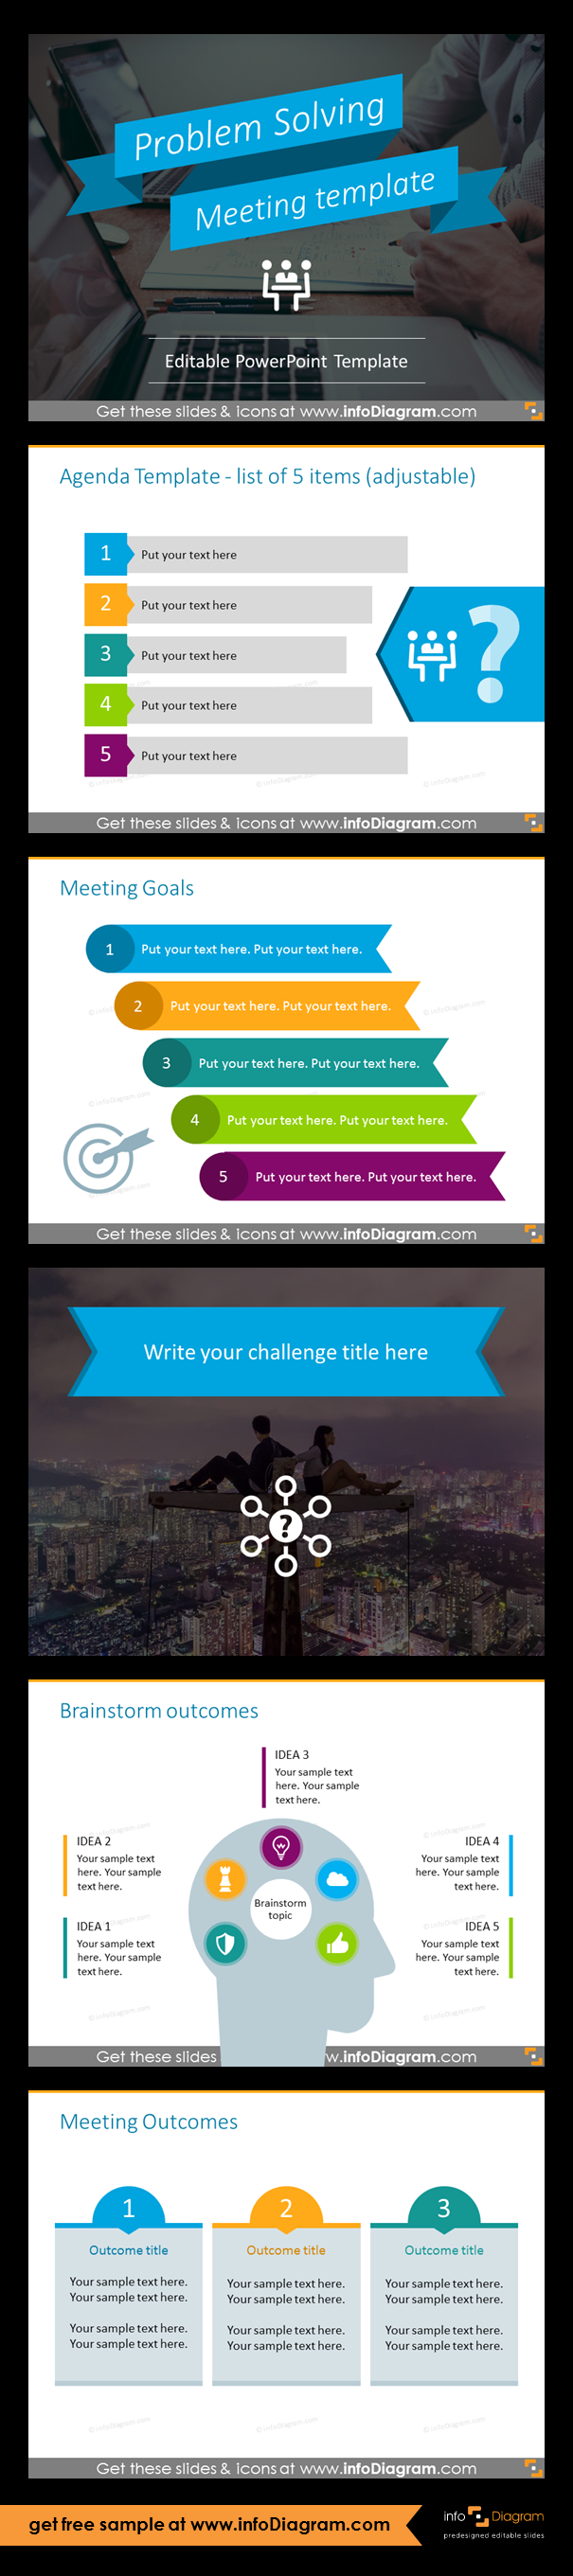 Problem solving meeting template ppt graphics create list goal 22 problem solving meeting template presentation layouts ppt toneelgroepblik Image collections